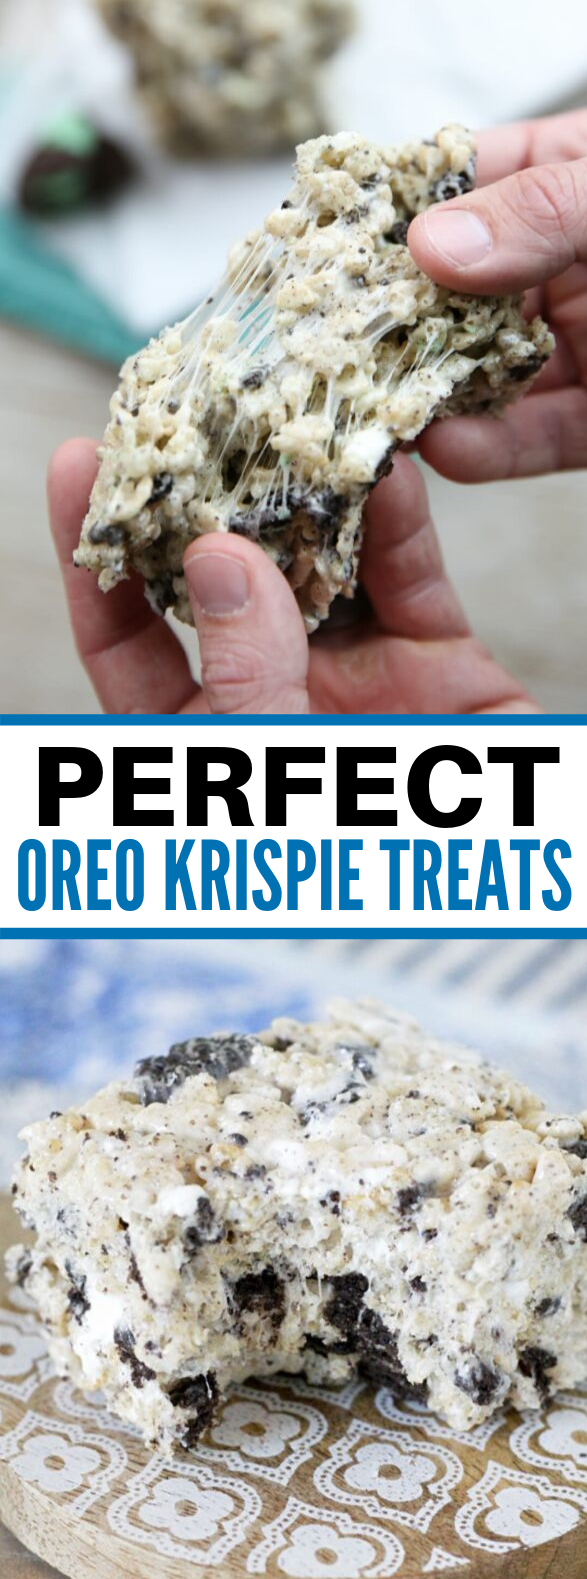 Oreo Krispie Treats #desserts #cereal